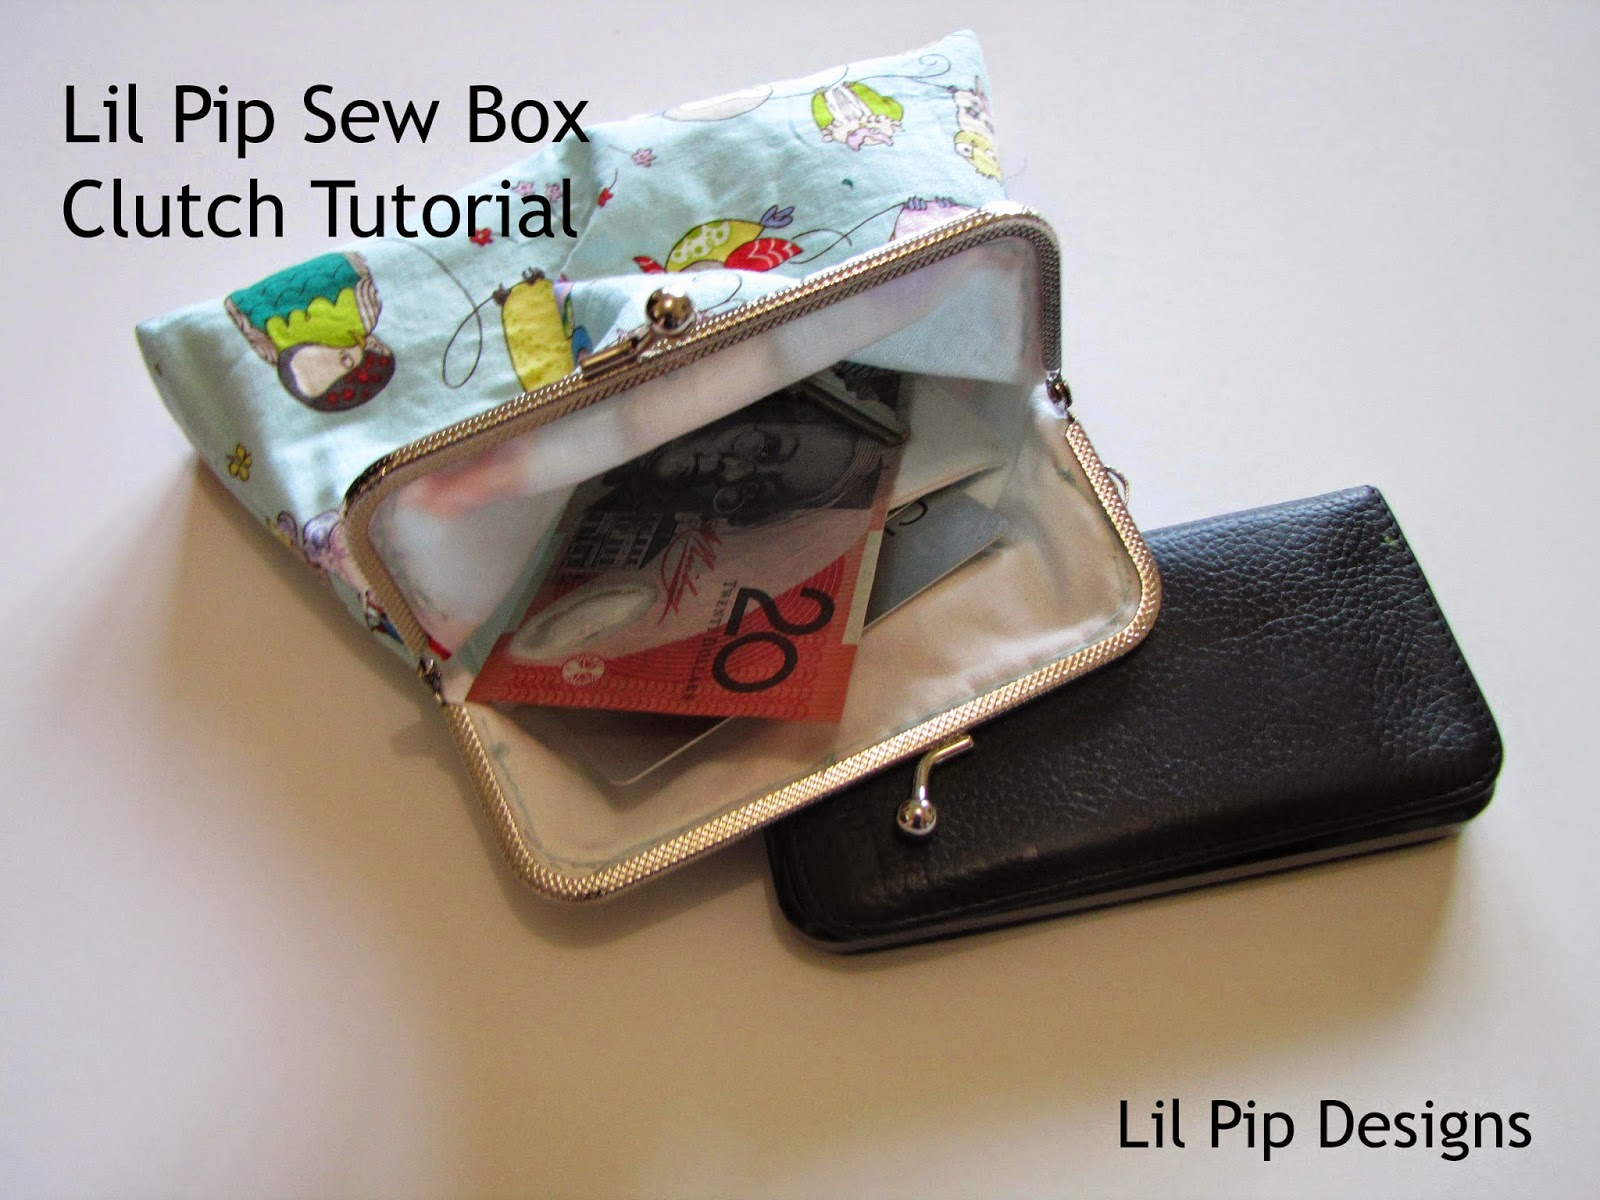 Lil Pip Designs: Lil Pip Sew Box Metal Frame Clutch Tutorial